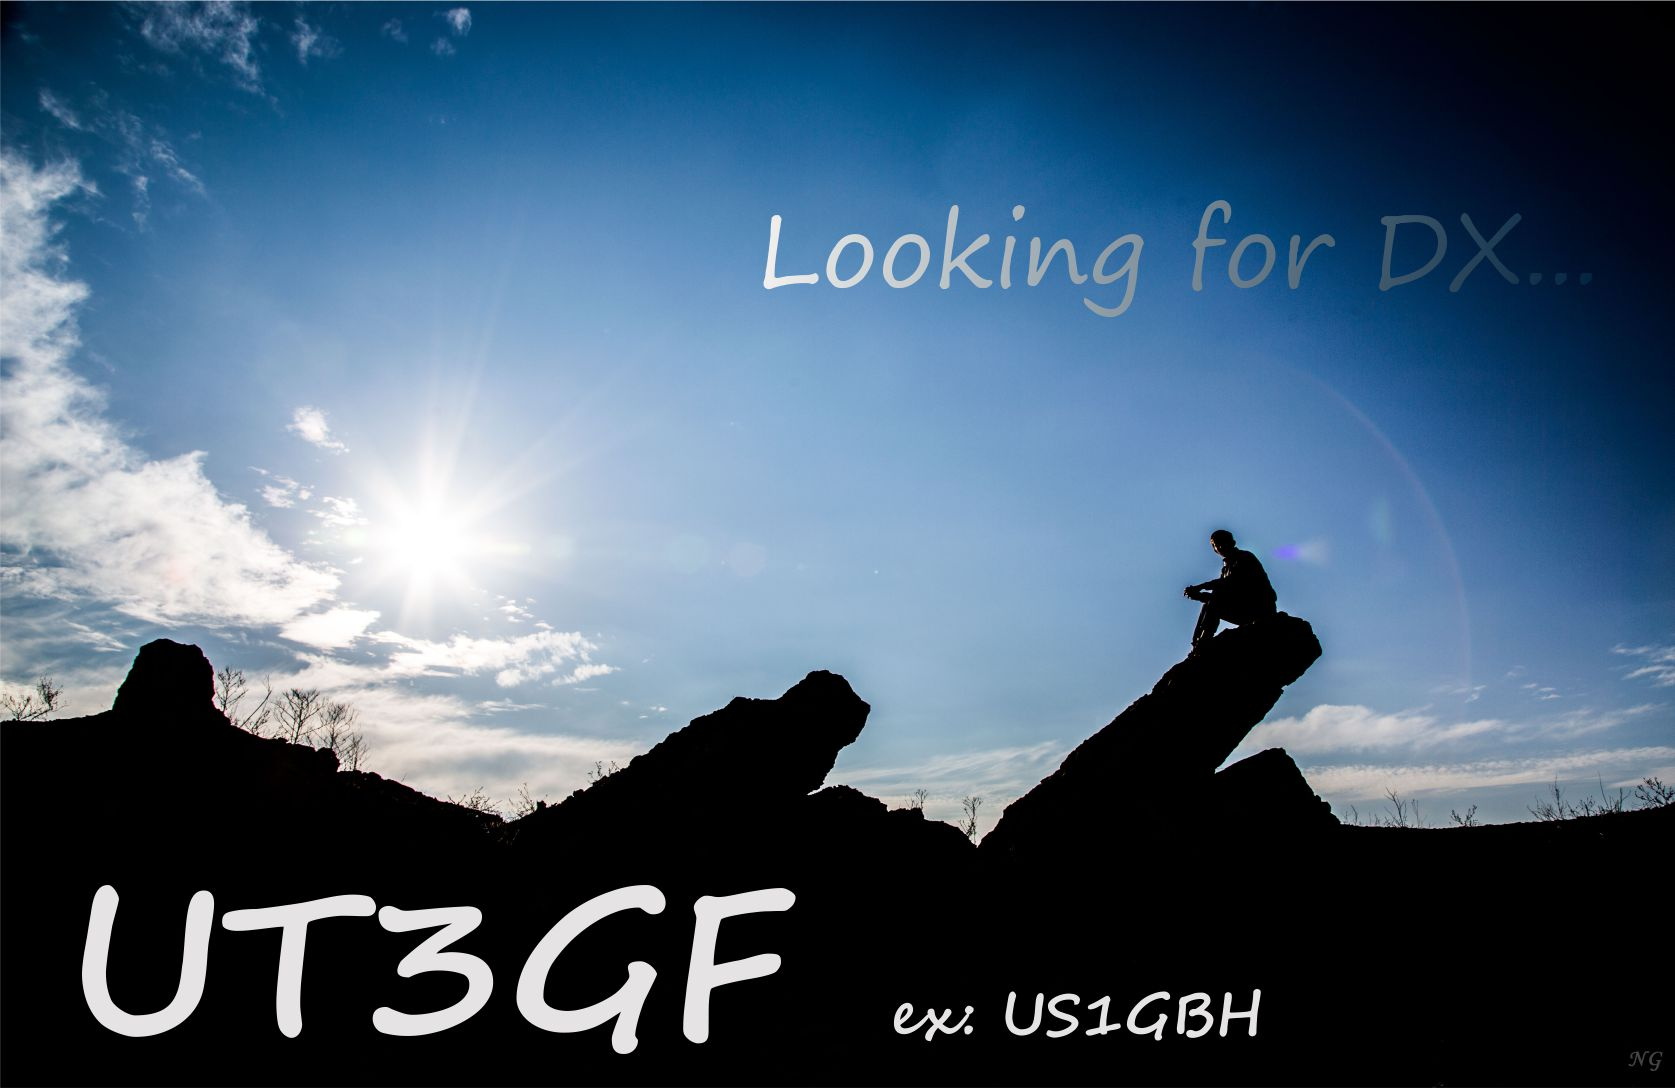 QSL image for UT3GF